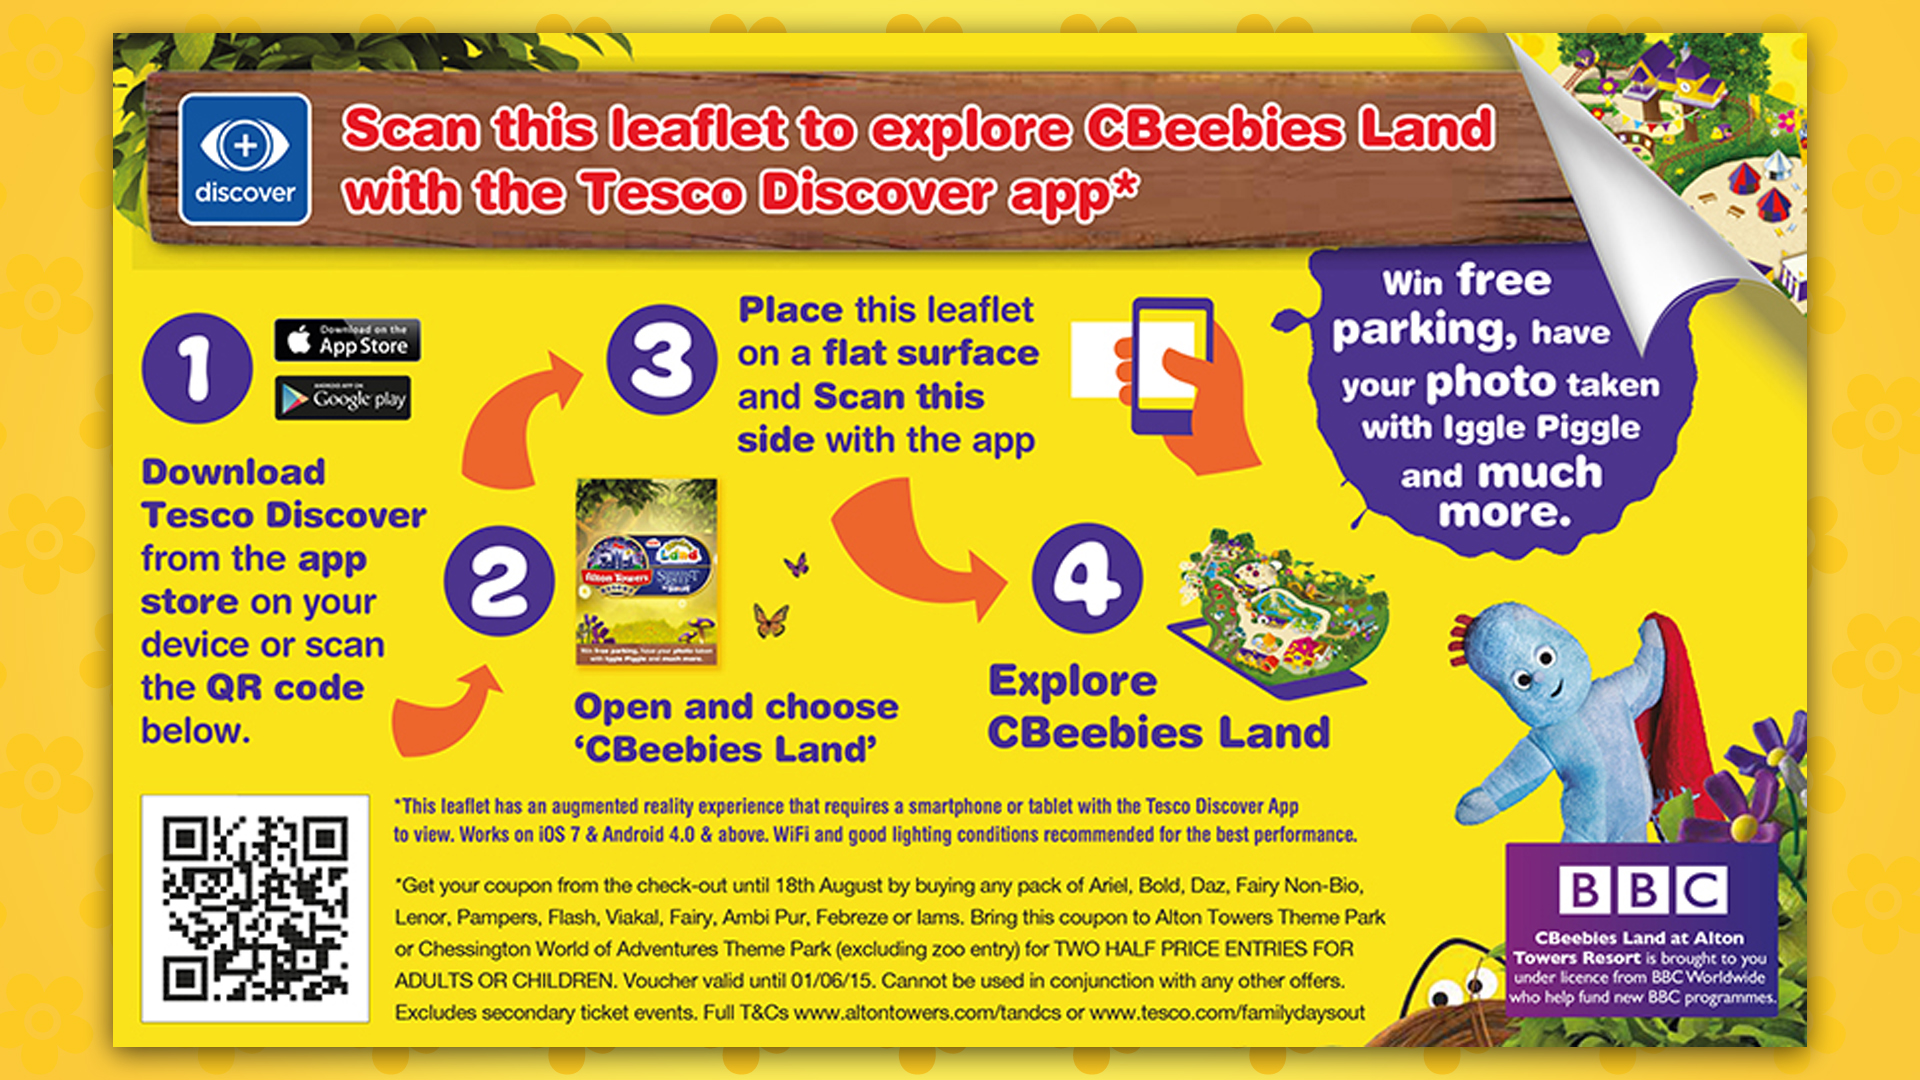 Procter gamble and tesco team up to deliver immersive mobile pg tesco discover alton towers cbeebies land 3d interactive ar map ec gumiabroncs Choice Image